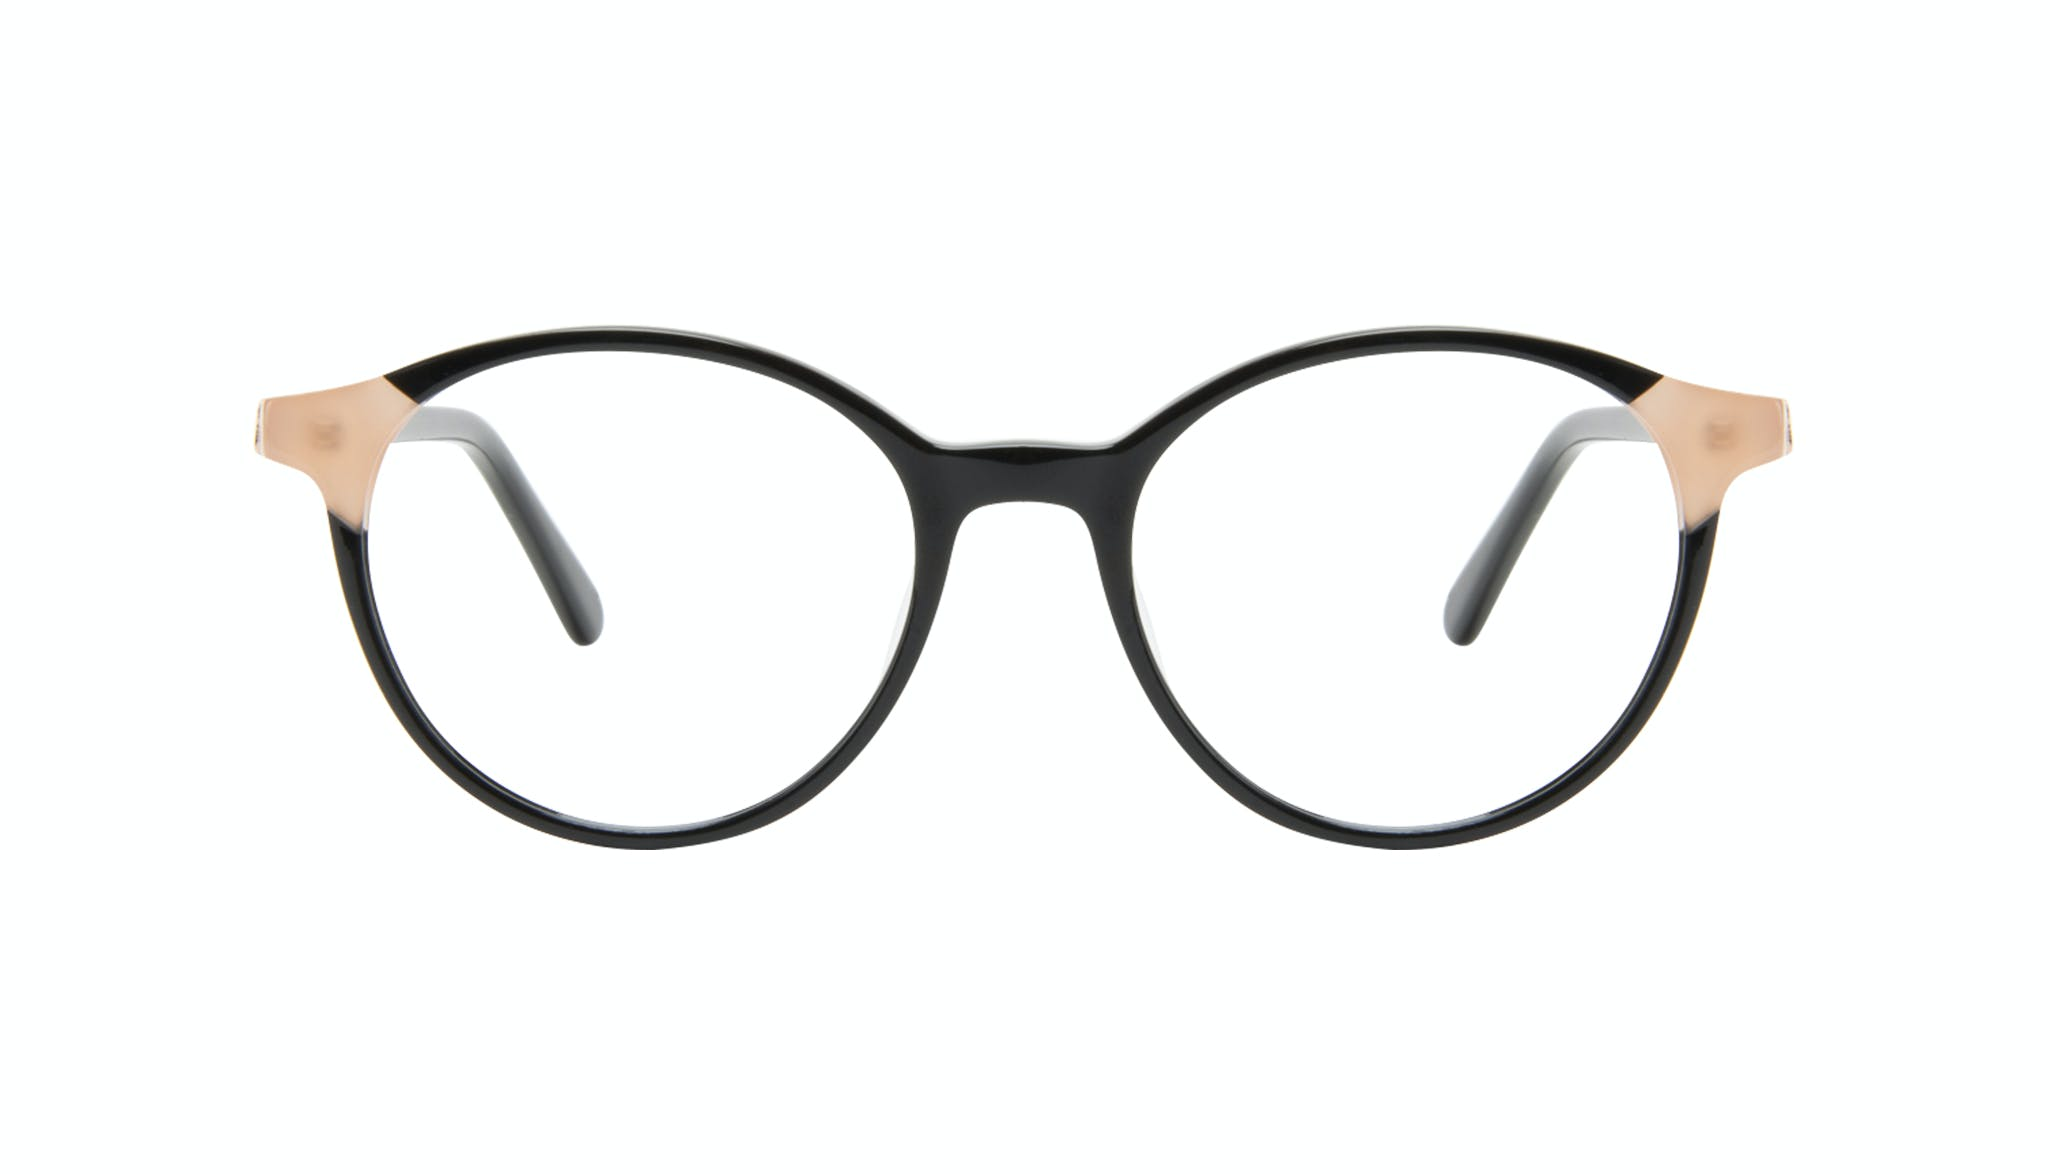 Affordable Fashion Glasses Round Eyeglasses Women Vivid Black Ivory